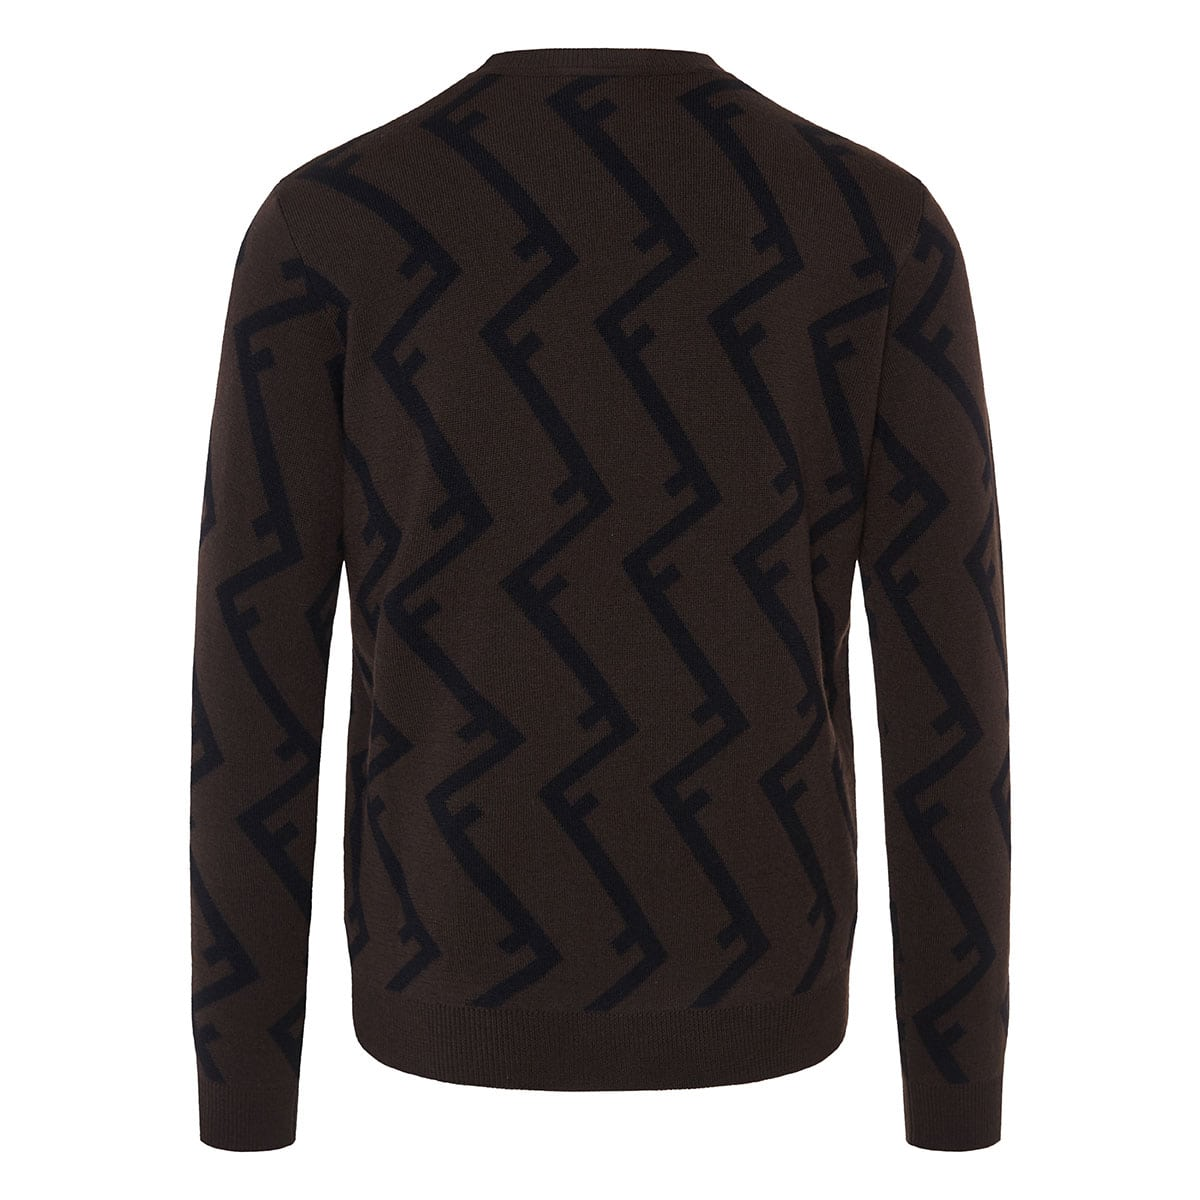 FF jacquard wool sweater